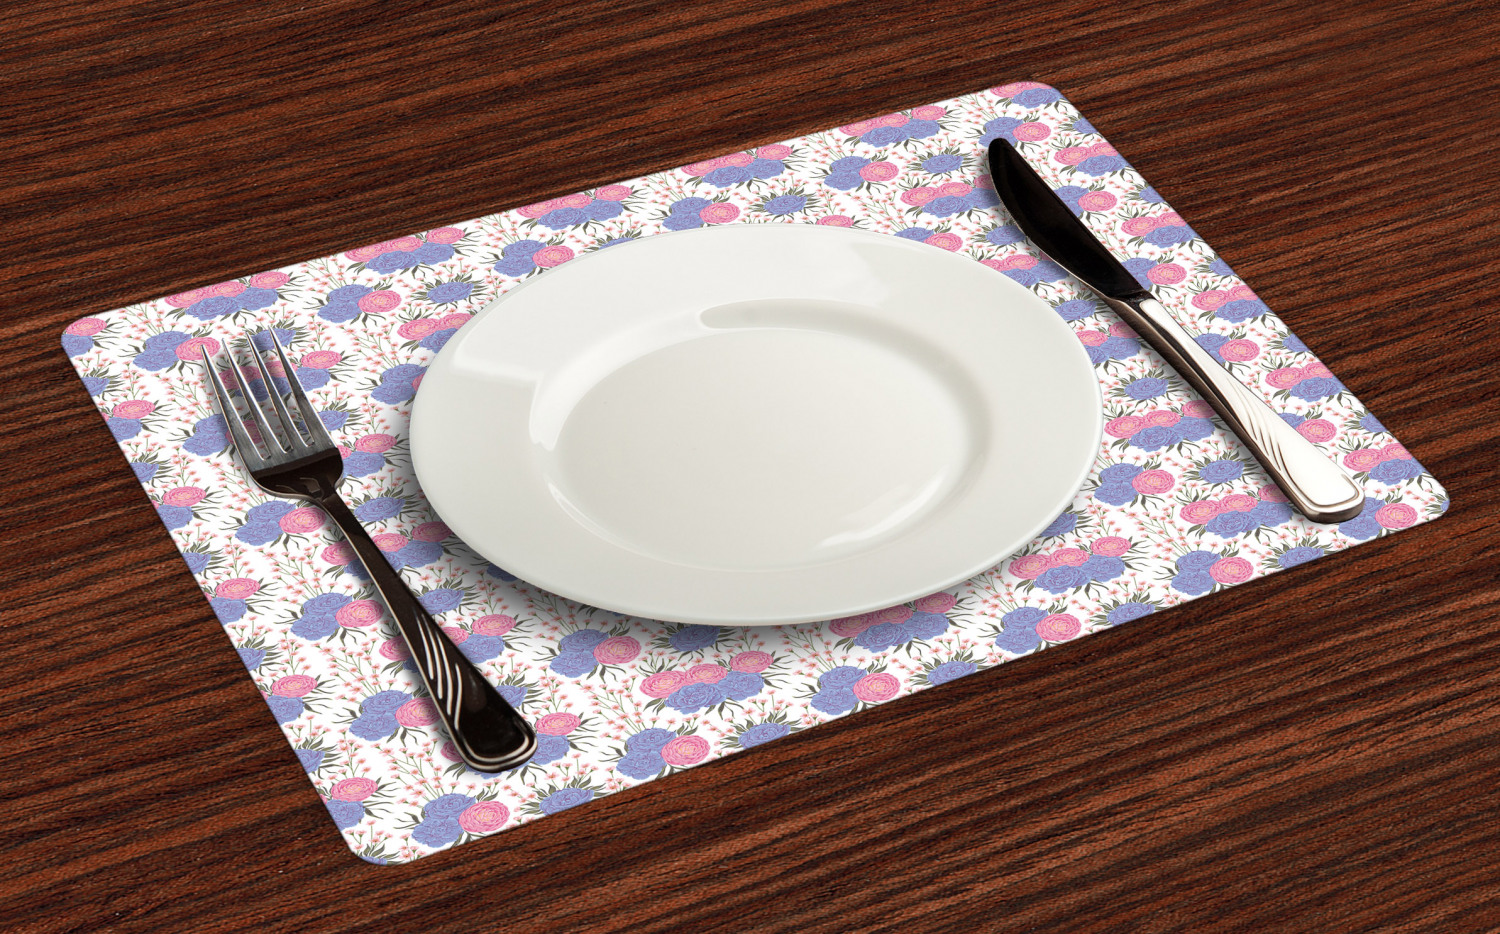 Ambesonne-Flower-Pattern-Placemat-Set-of-4-Fabric-Place-Mats-for-Table-Decor thumbnail 201